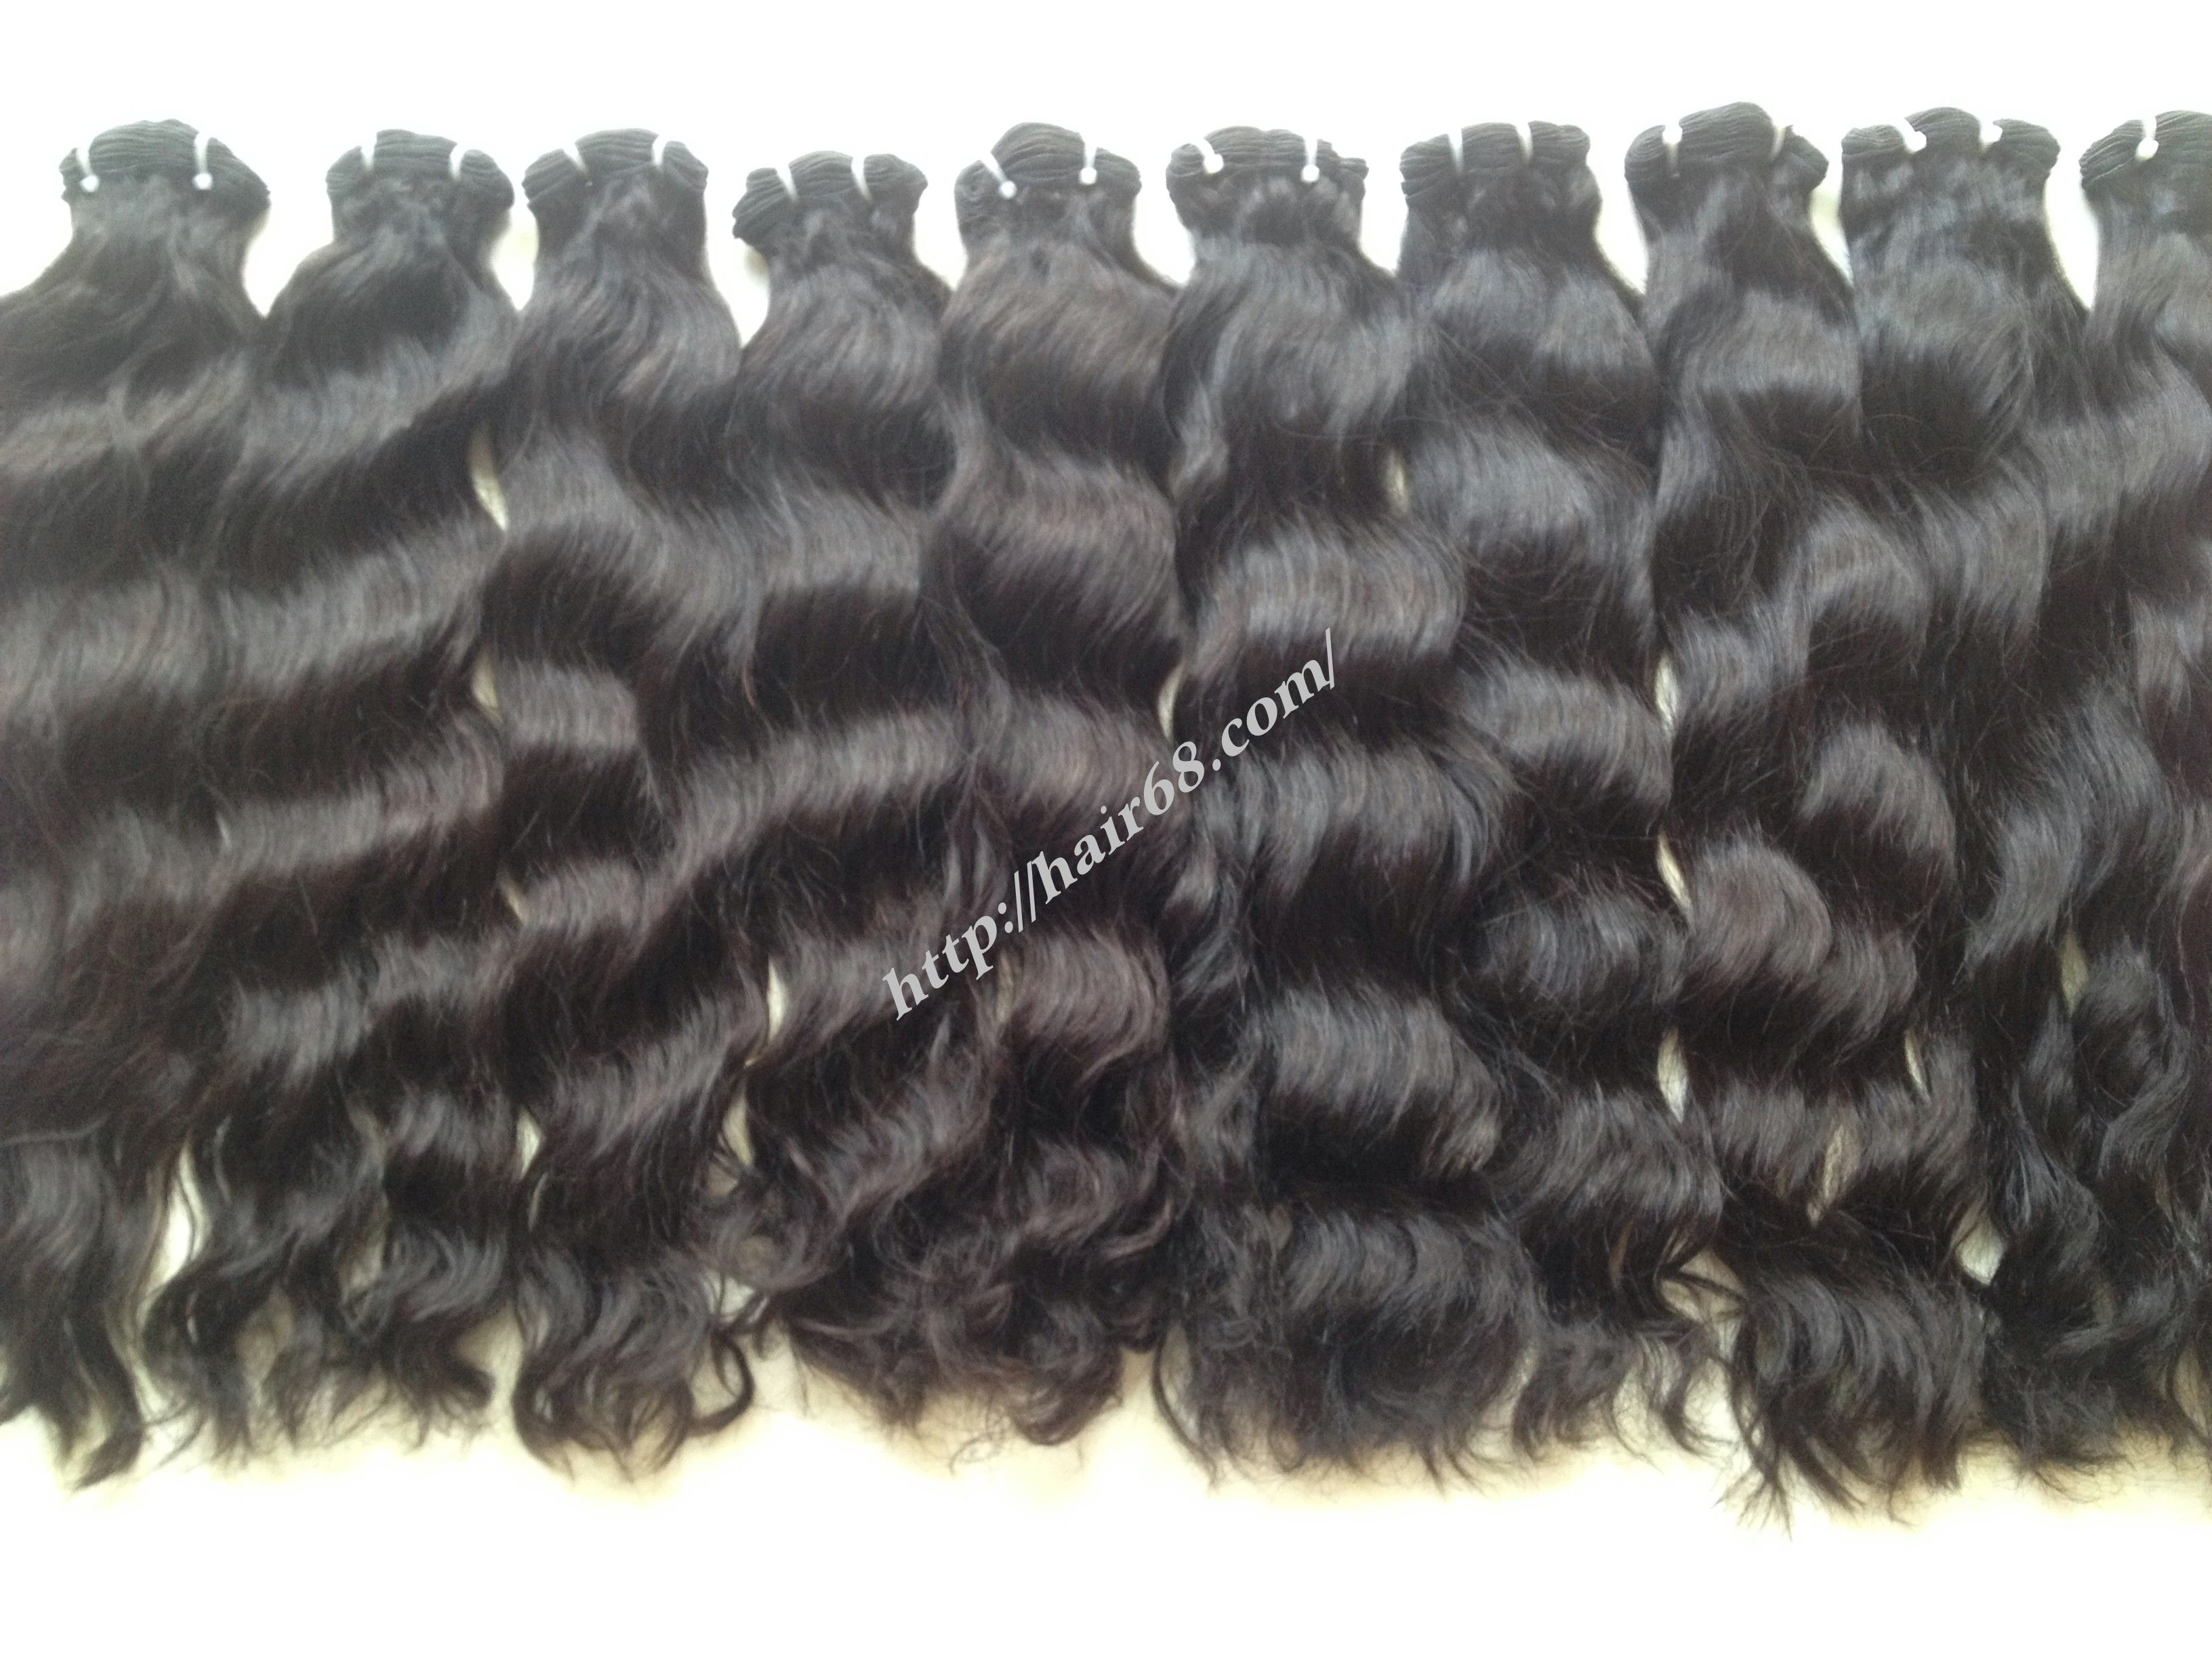 Material Human Hair Textile Silk Soft Shinning Brand Name